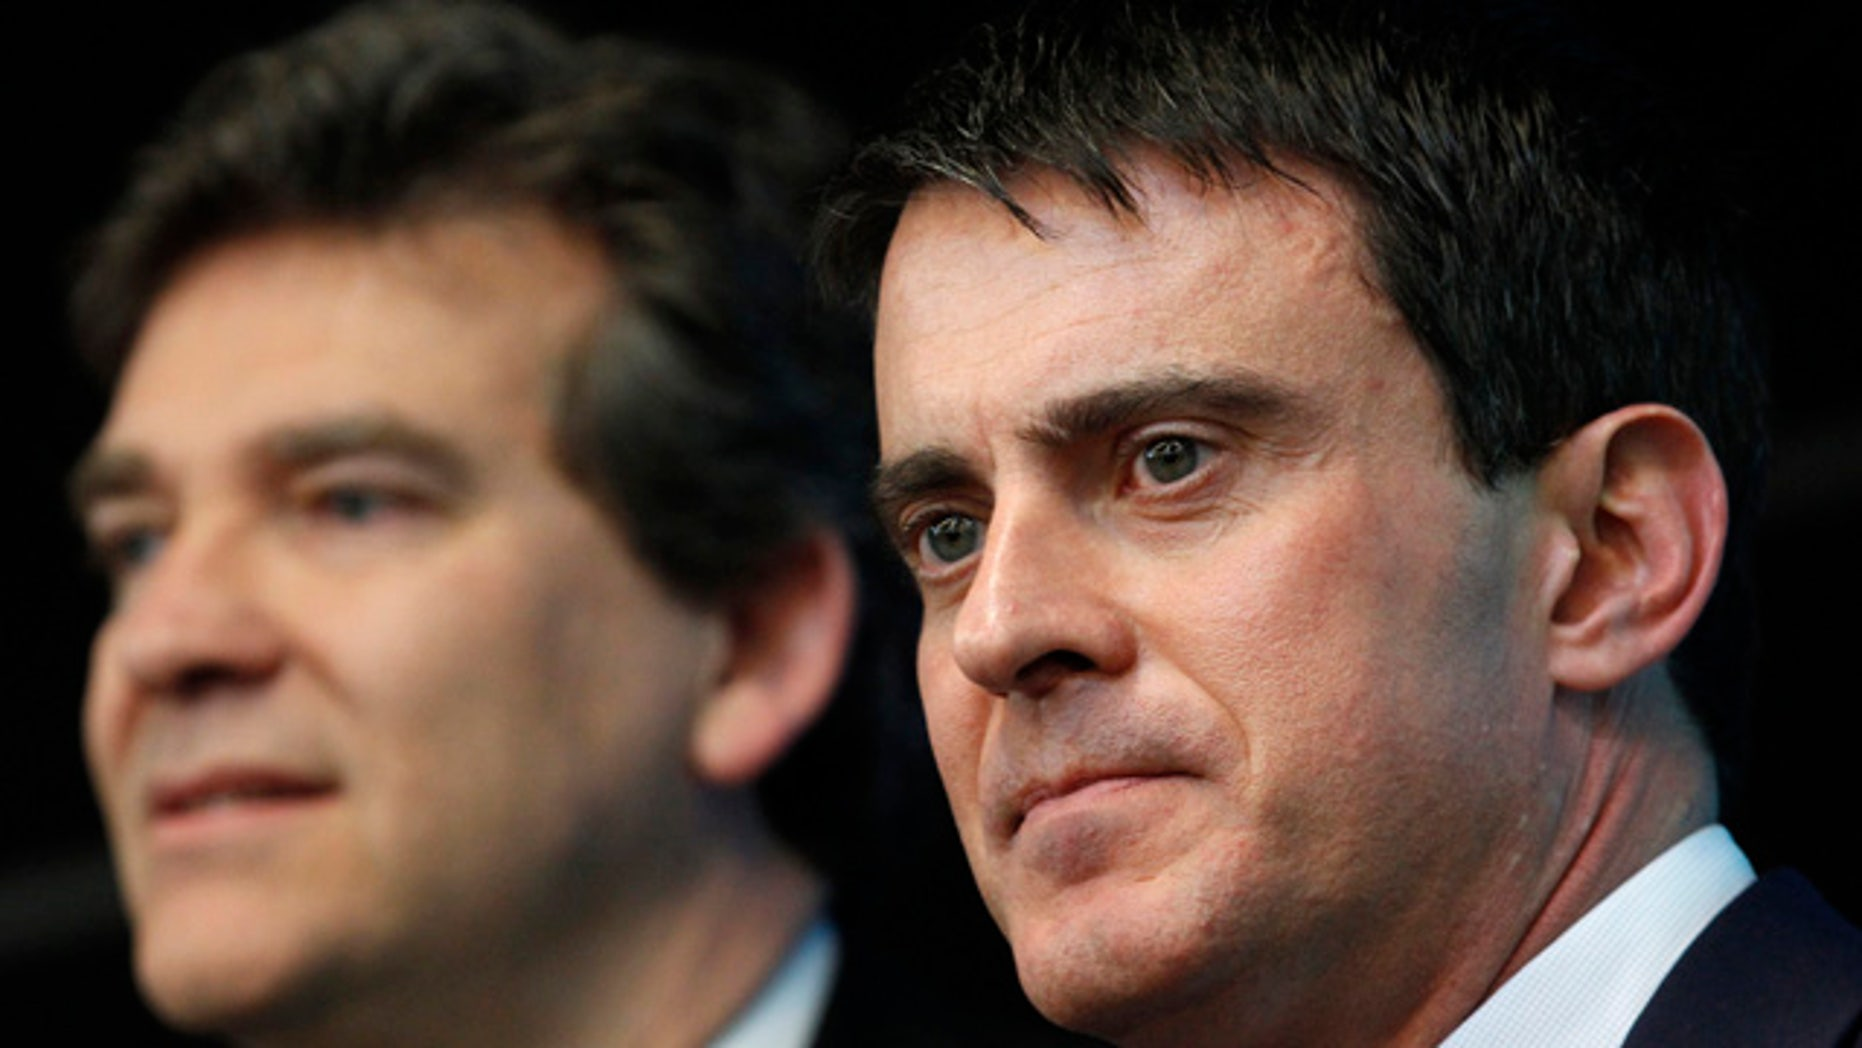 April 10, 2014: This photo shows French prime minister Manuel Valls, right, and Economy Minister Arnaud Montebourg during a visit to French defense and electronic company Thales in Gennevilliers, outside Paris. (AP)